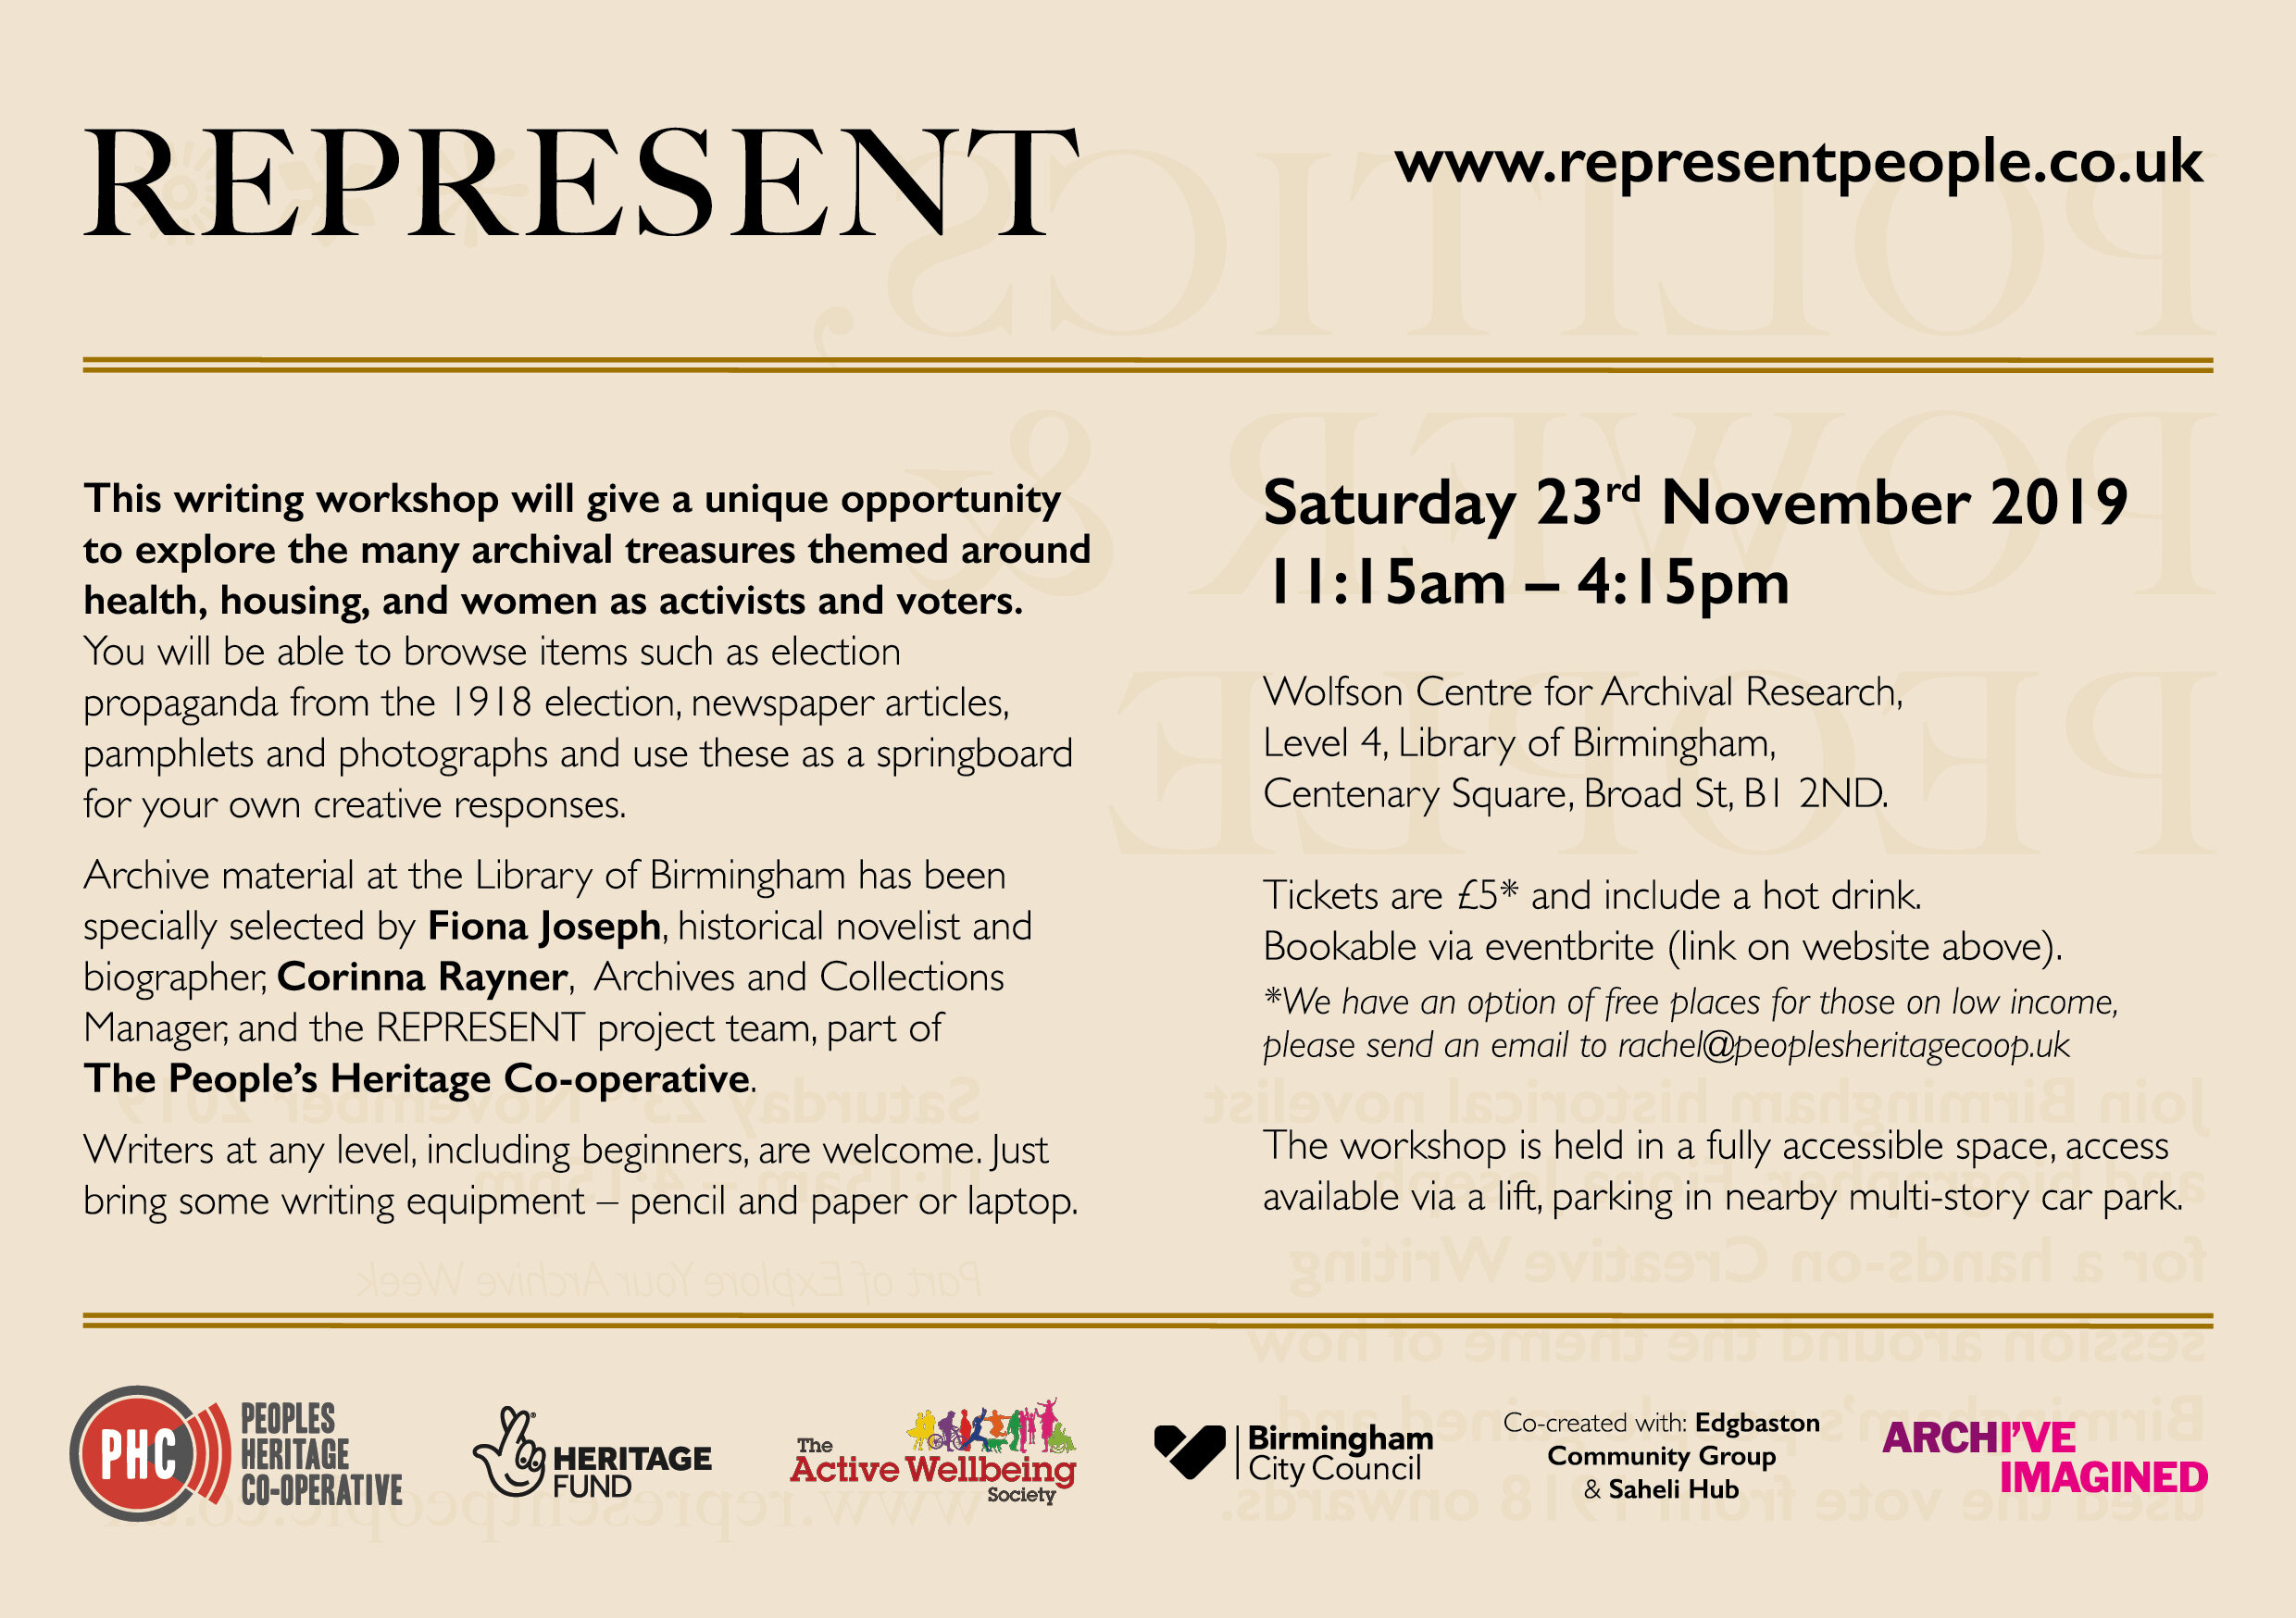 REPRESENT - creative writing workshop flyer - layers idea for sign off8.jpg